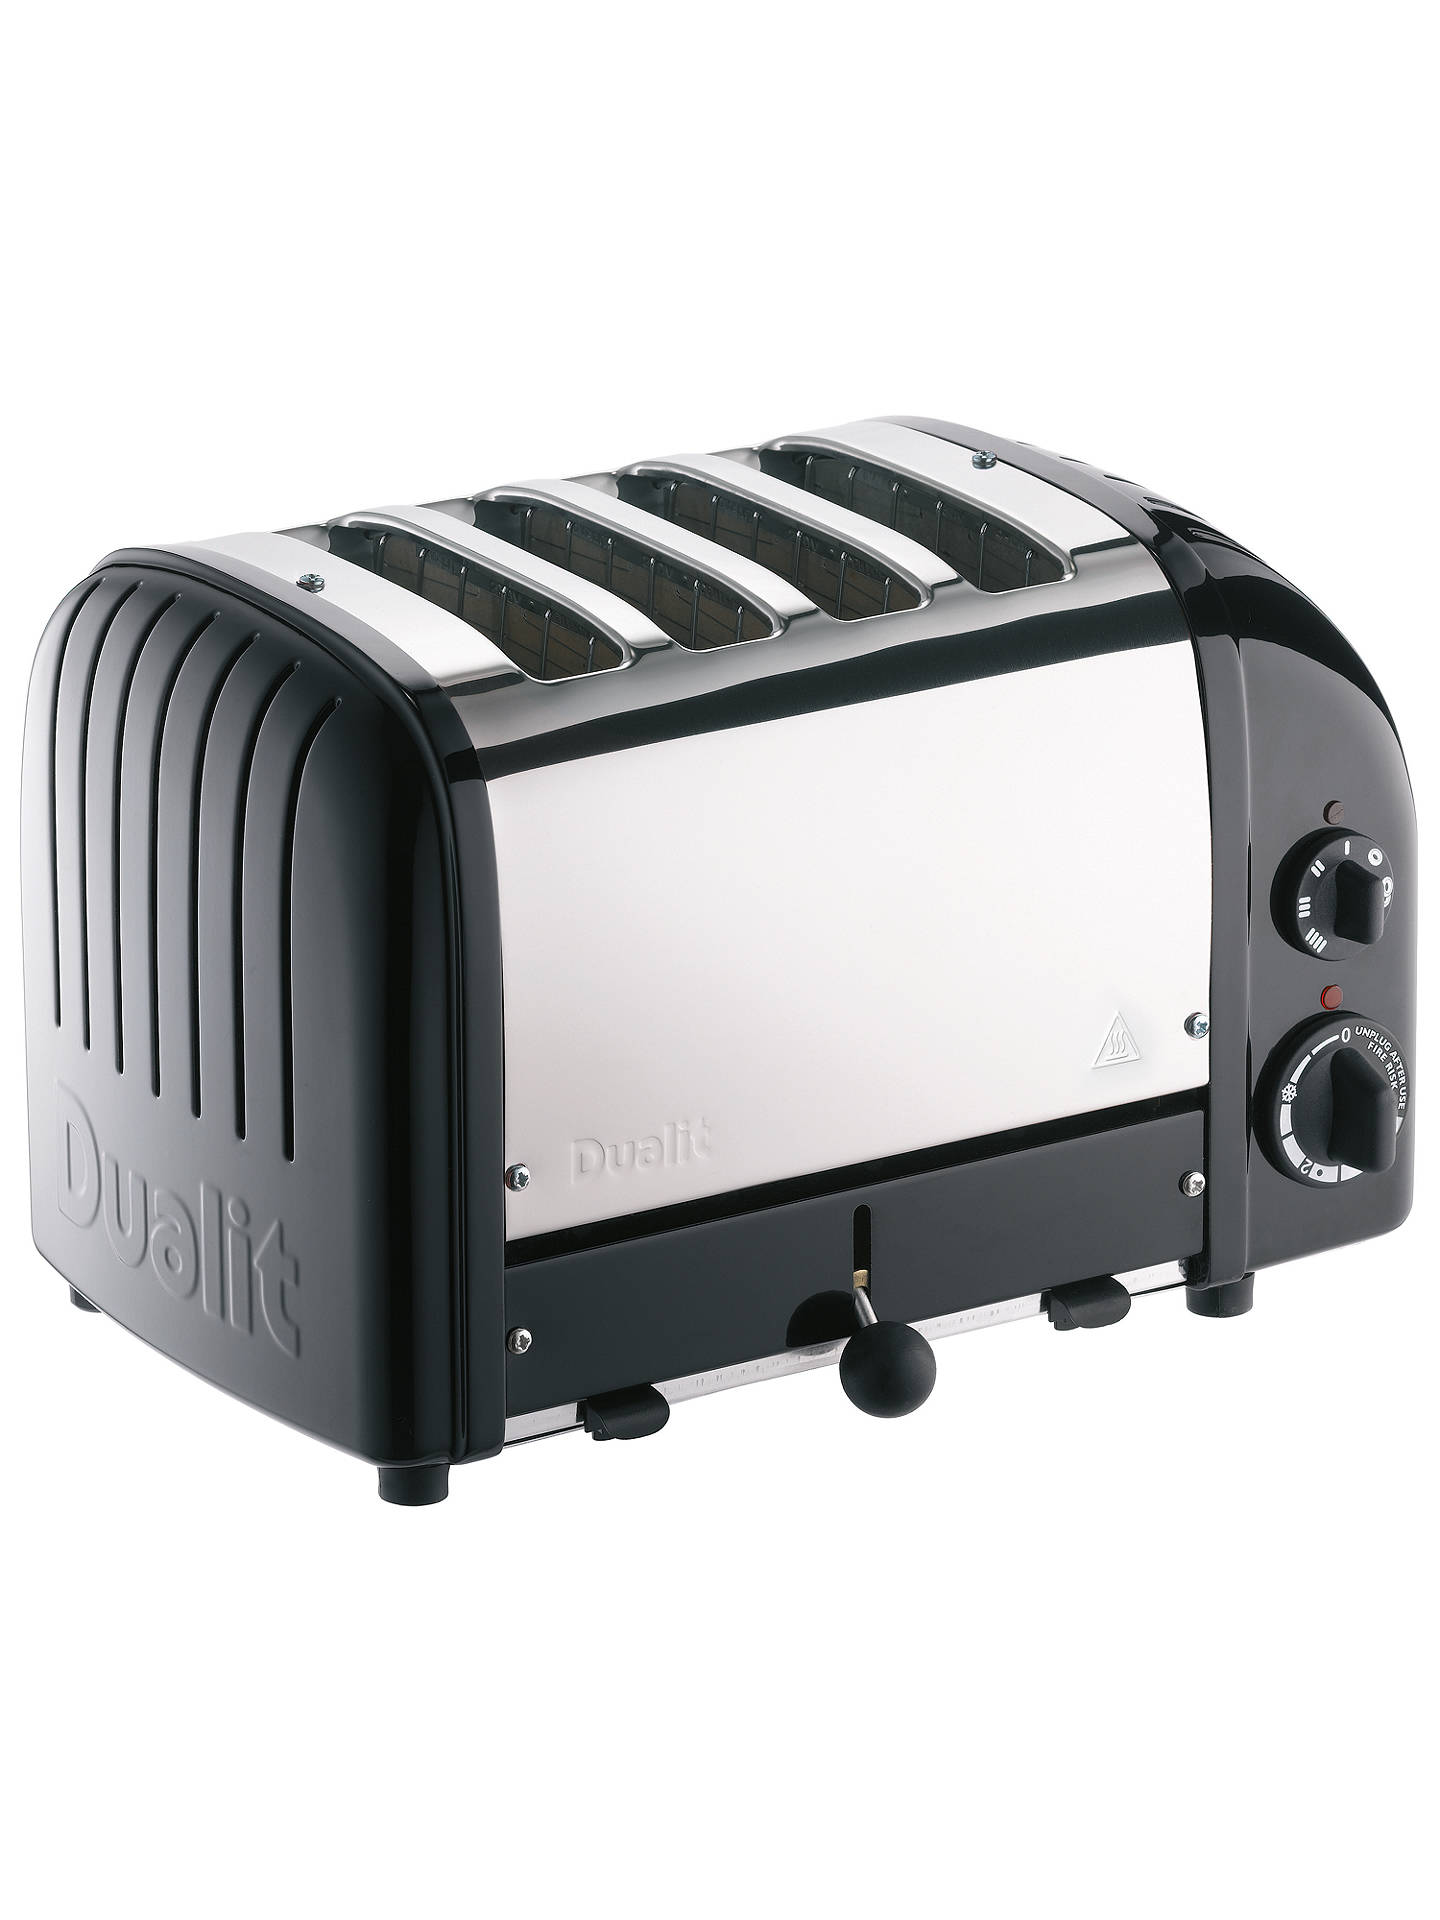 Buy Dualit NewGen 4-Slice Toaster, Black Online at johnlewis.com